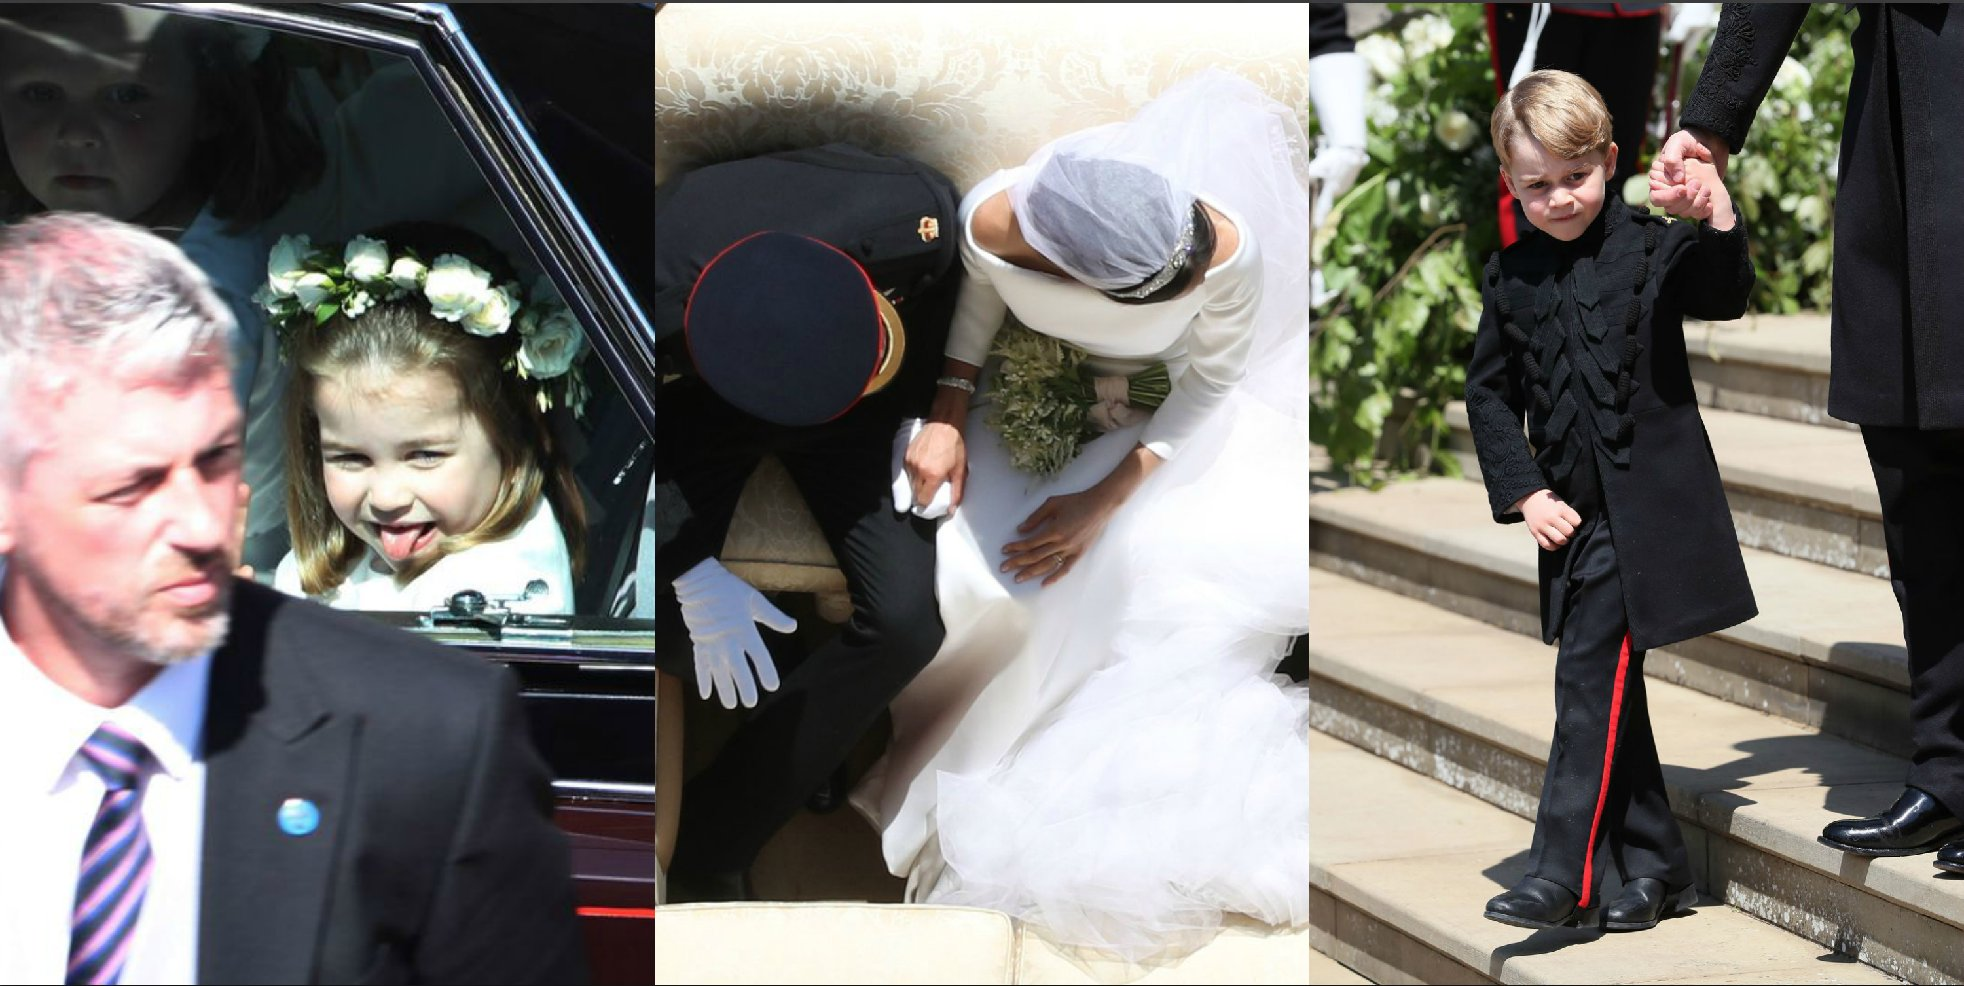 70 Candid, Beautiful, Heart-Melty Moments From the #RoyalWedding https://t.co/XZ90Pqn906 https://t.co/PmrpapI5Ts